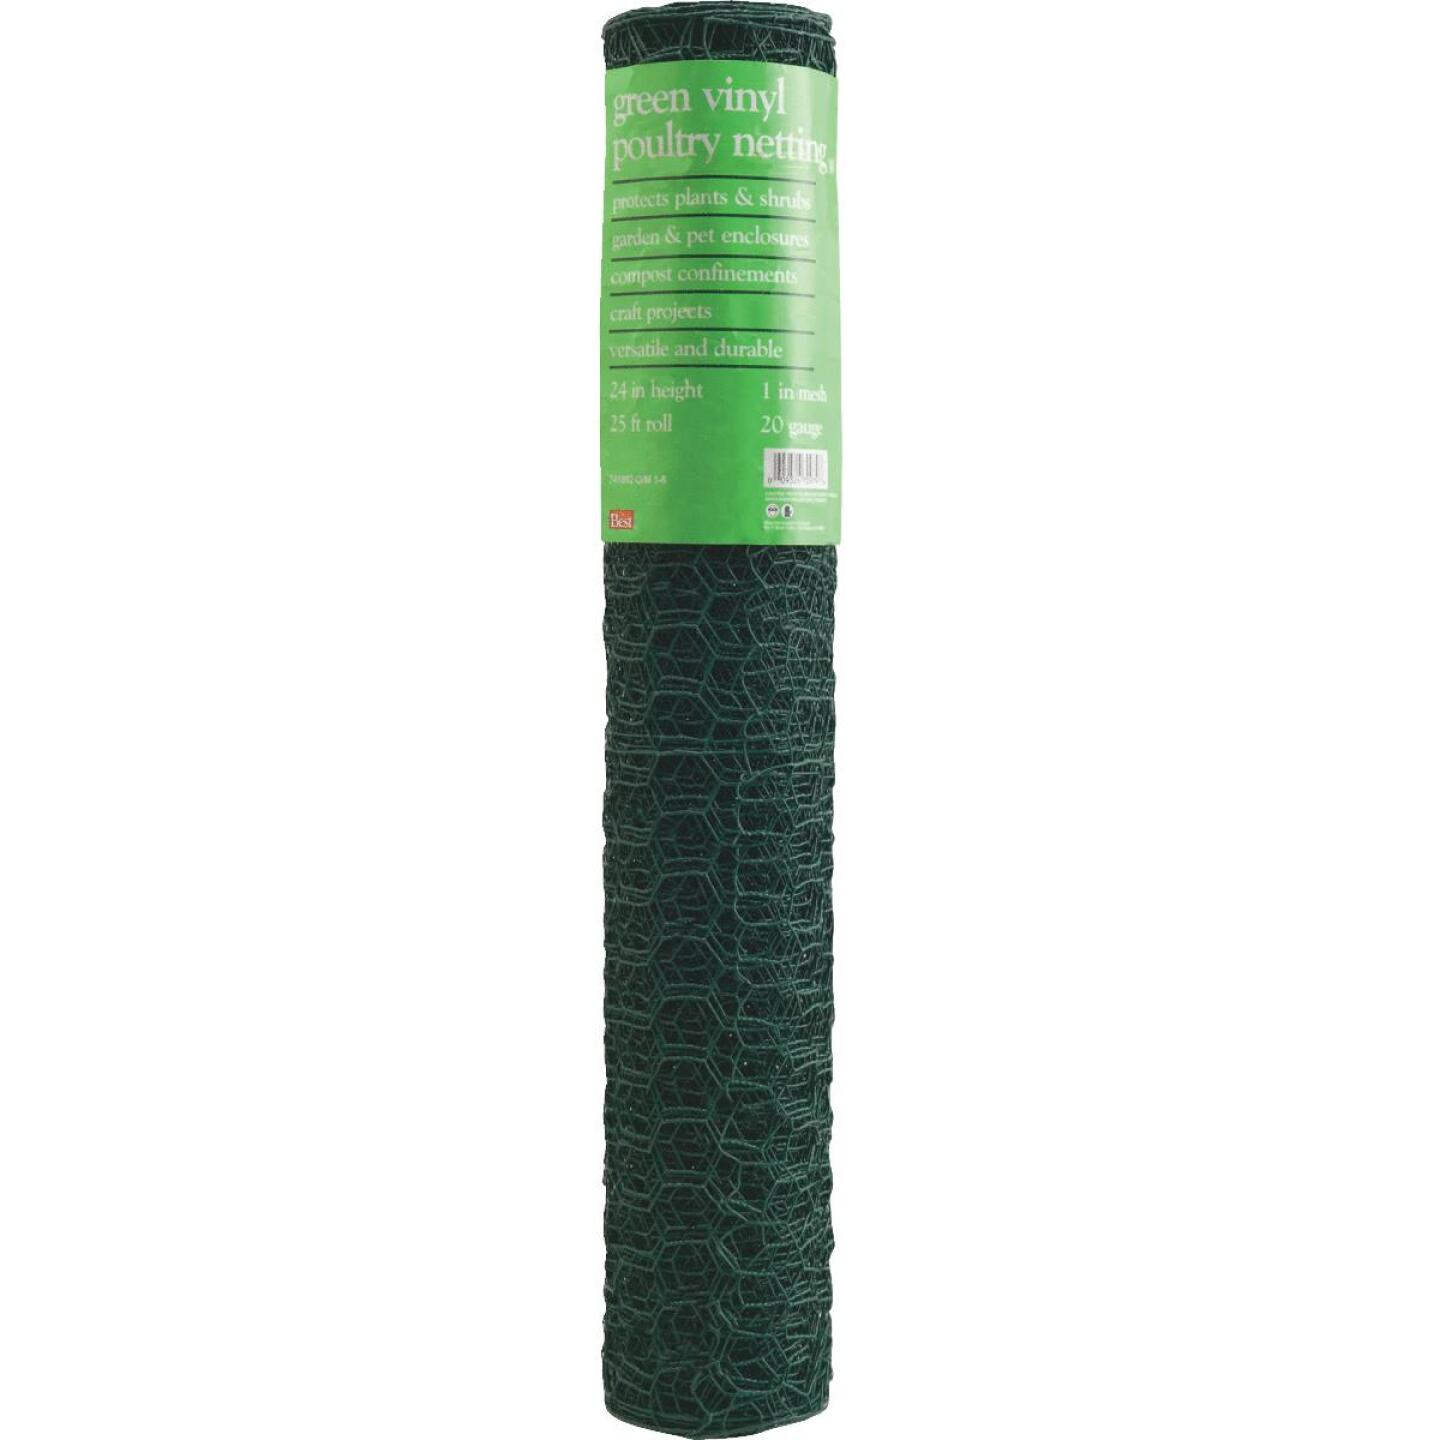 1 In. x 24 In. H. x 25 Ft. L. Green Vinyl-Coated Poultry Netting Image 2